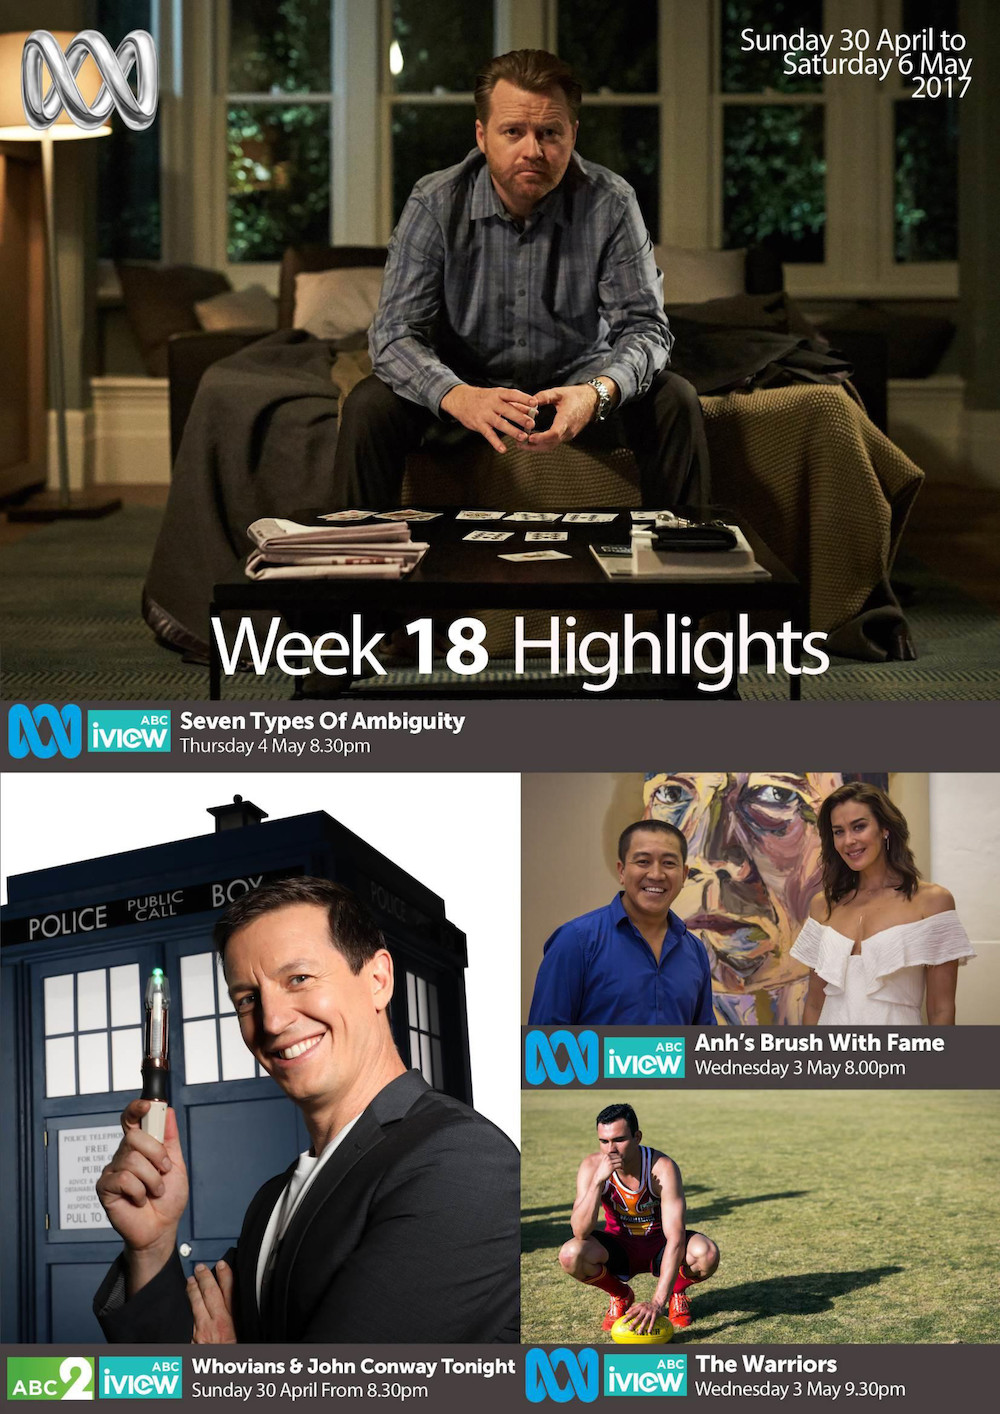 ABC Program Highlights - Week 18